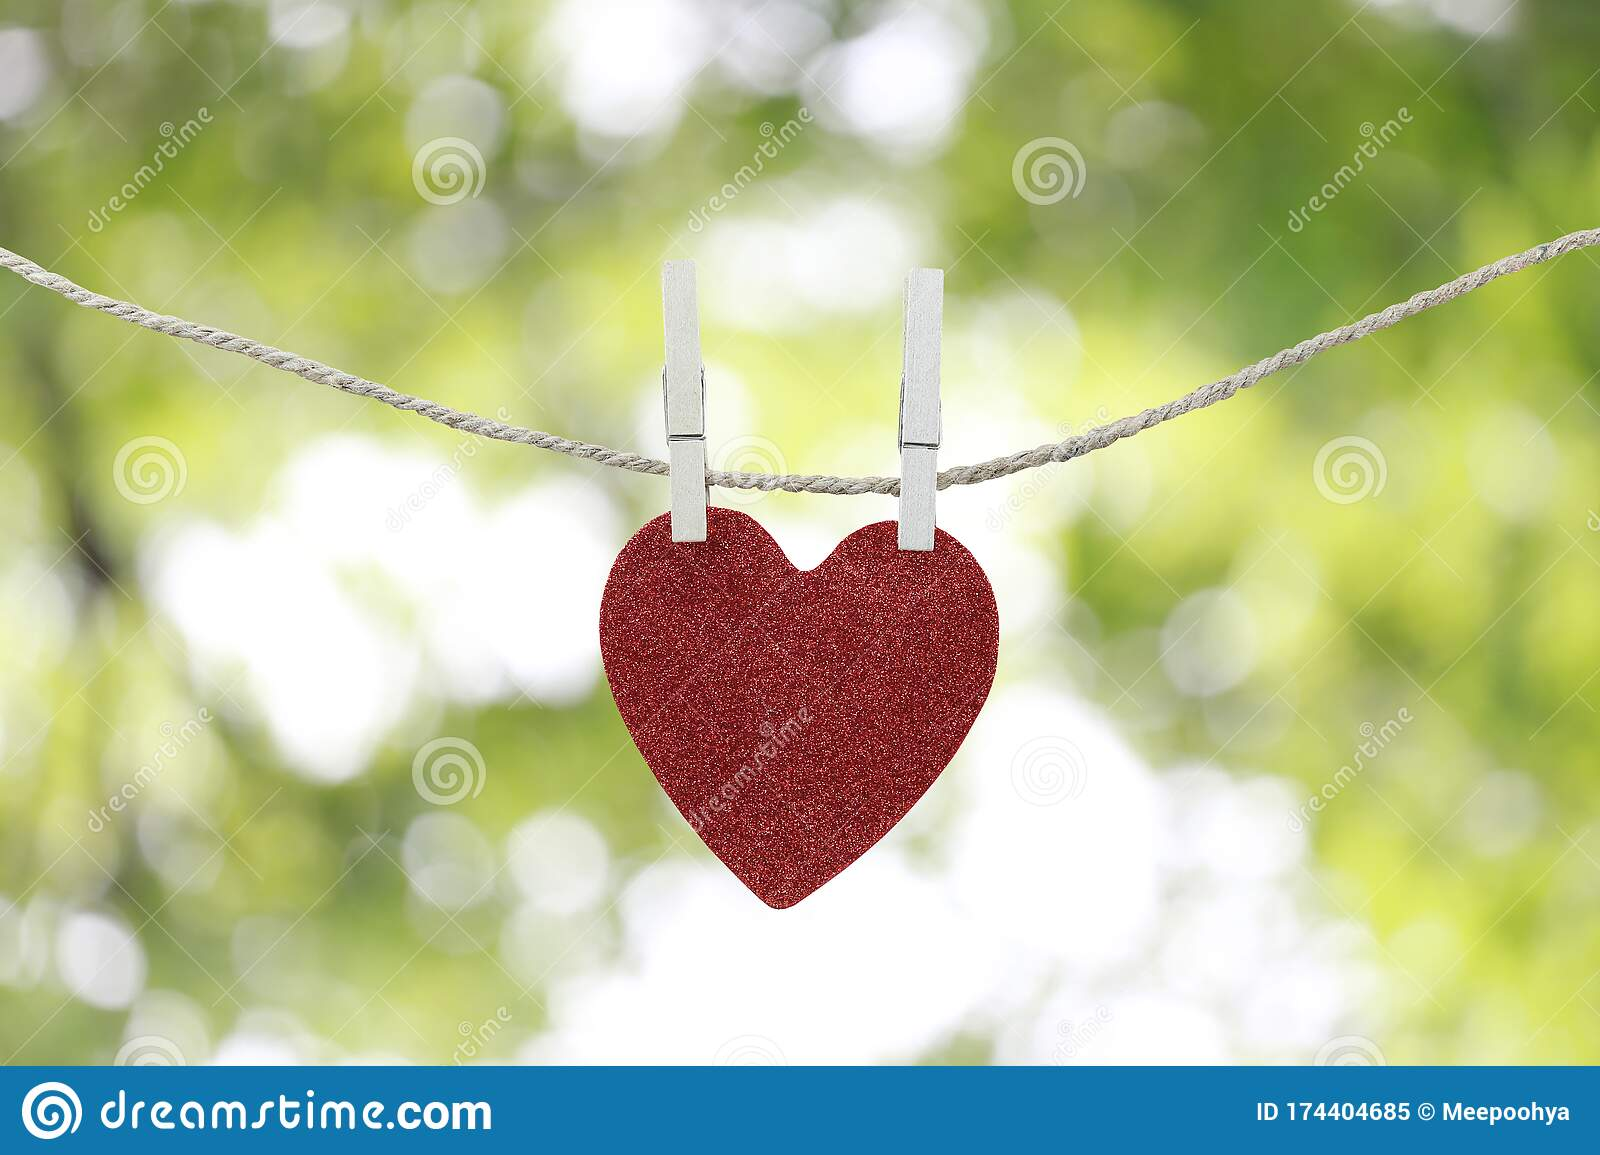 Red Heart Hanging On A Hemp Rope On The Green Bokeh Background Stock Image Image Of Natural Code 174404685